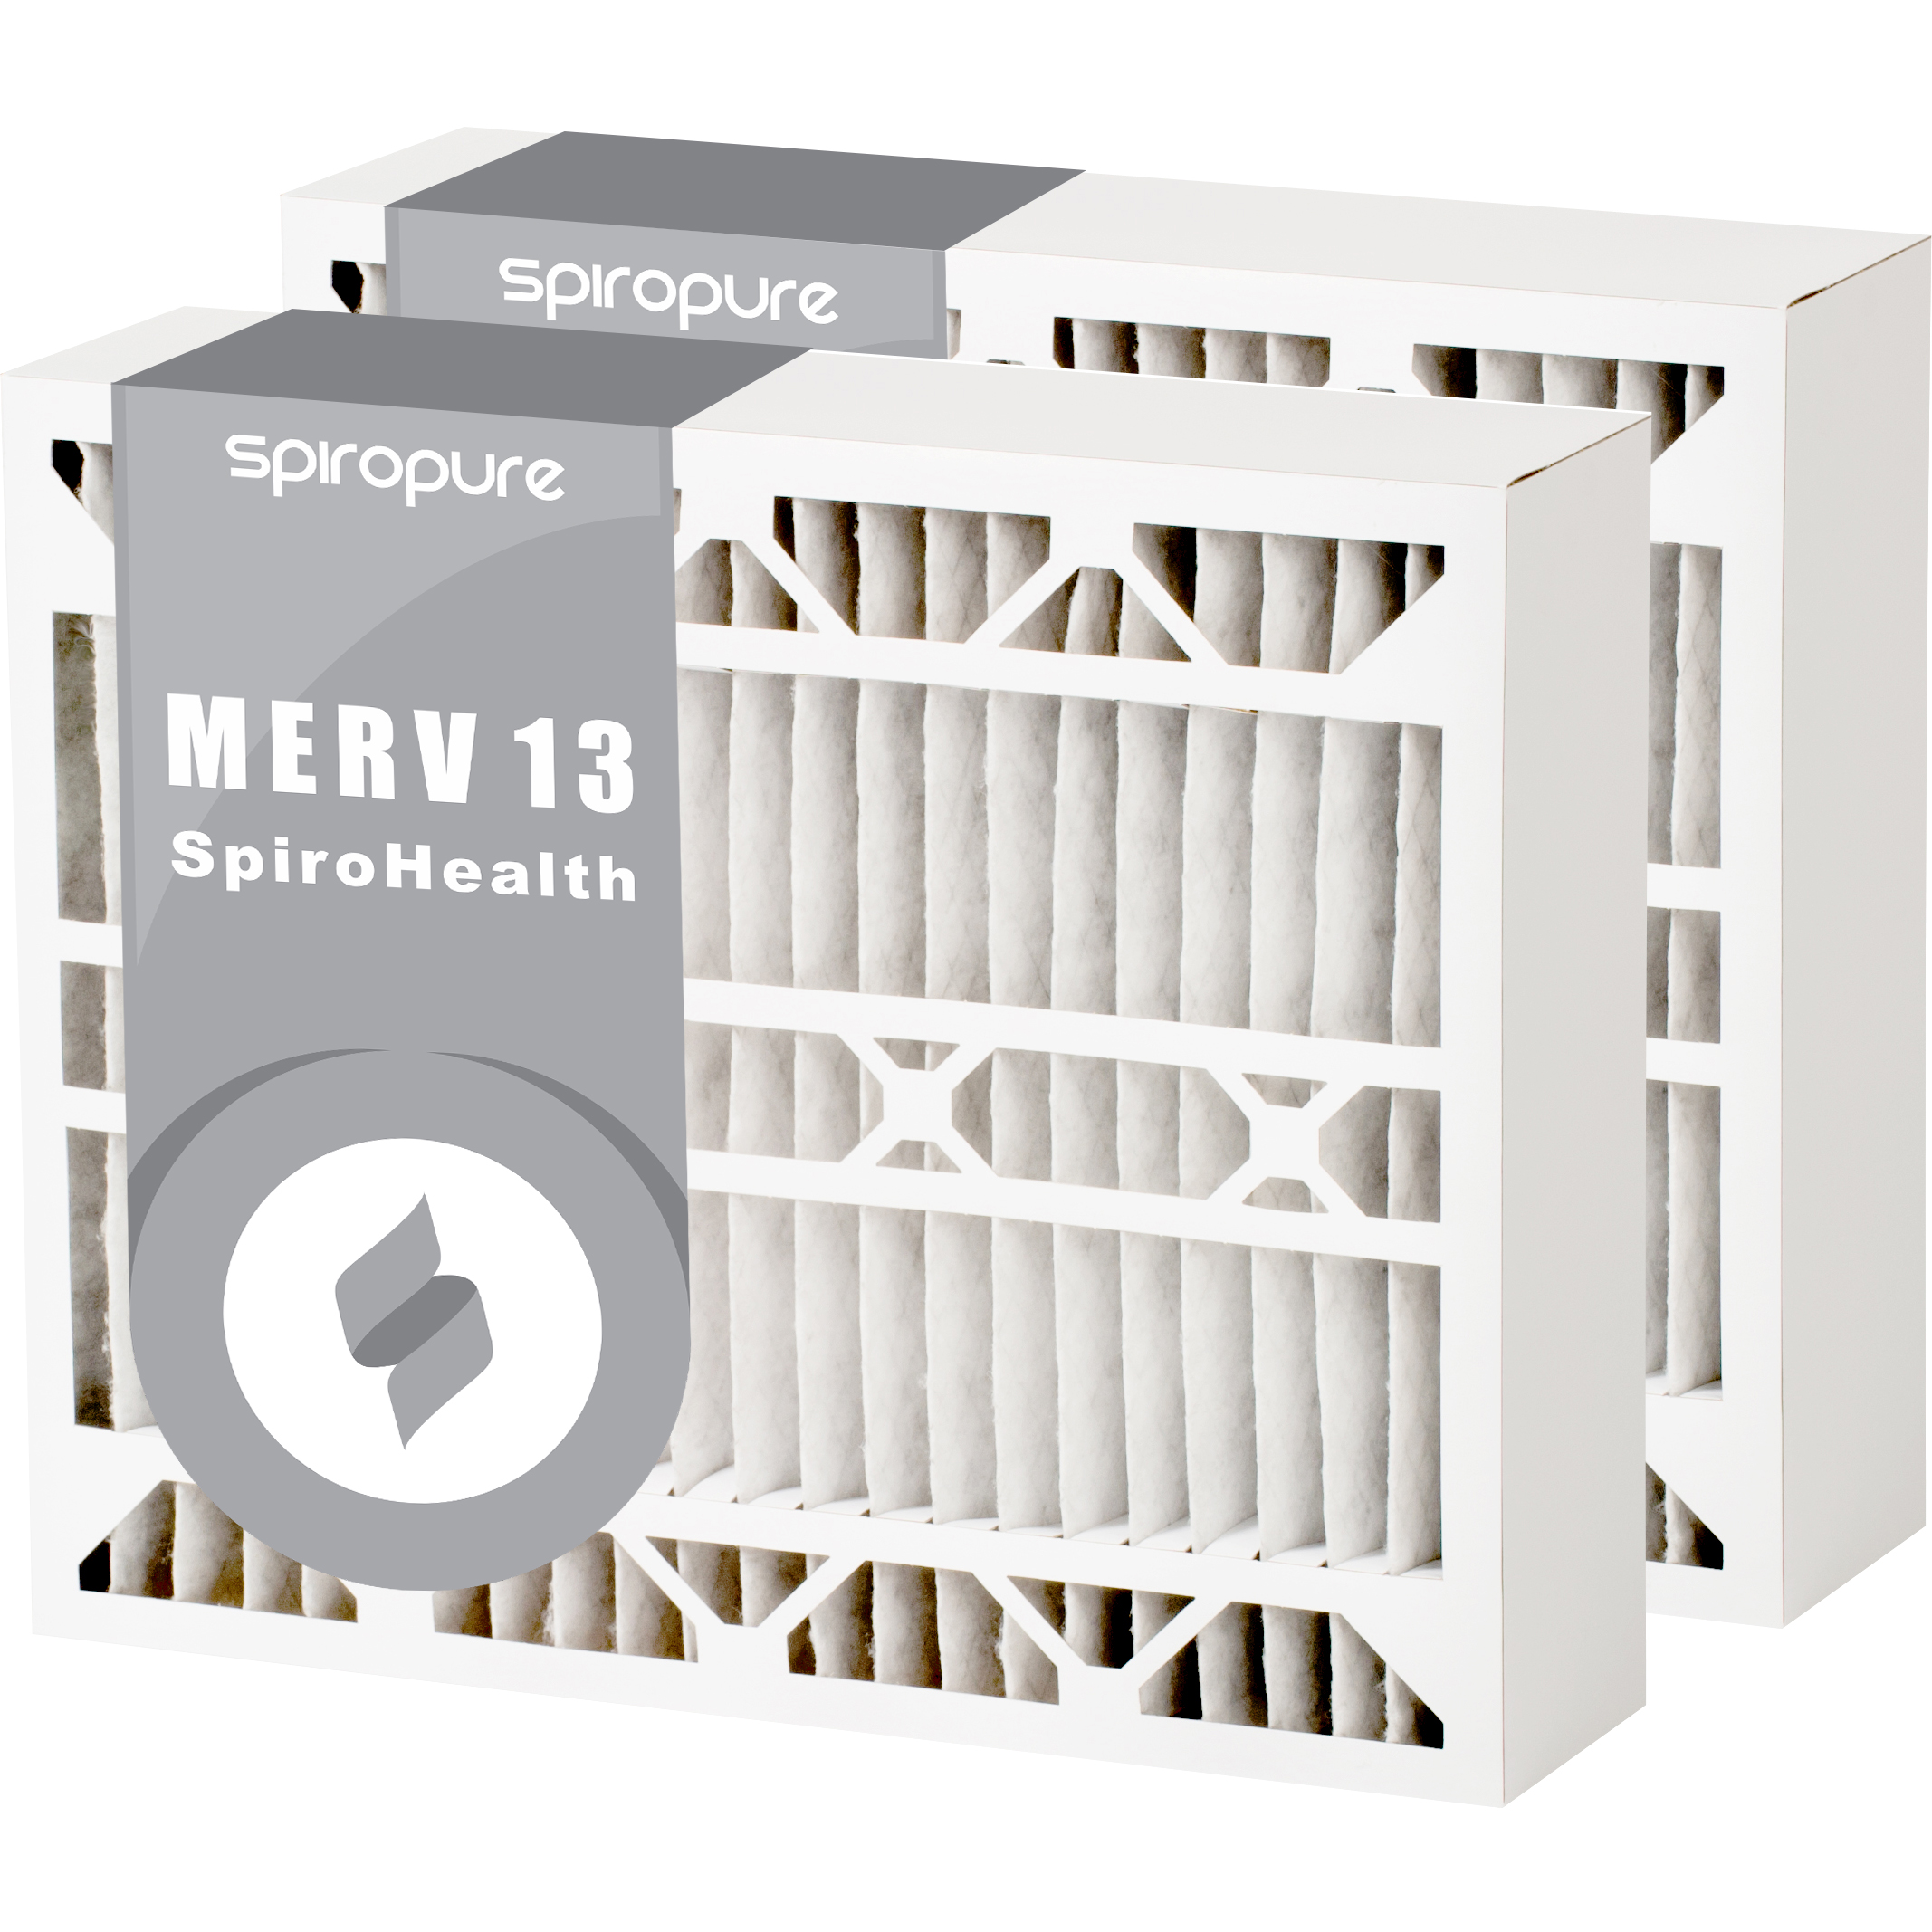 Filters Fast Compatible Replacement for Carrier MERV 13 CMF1620 2-Pack